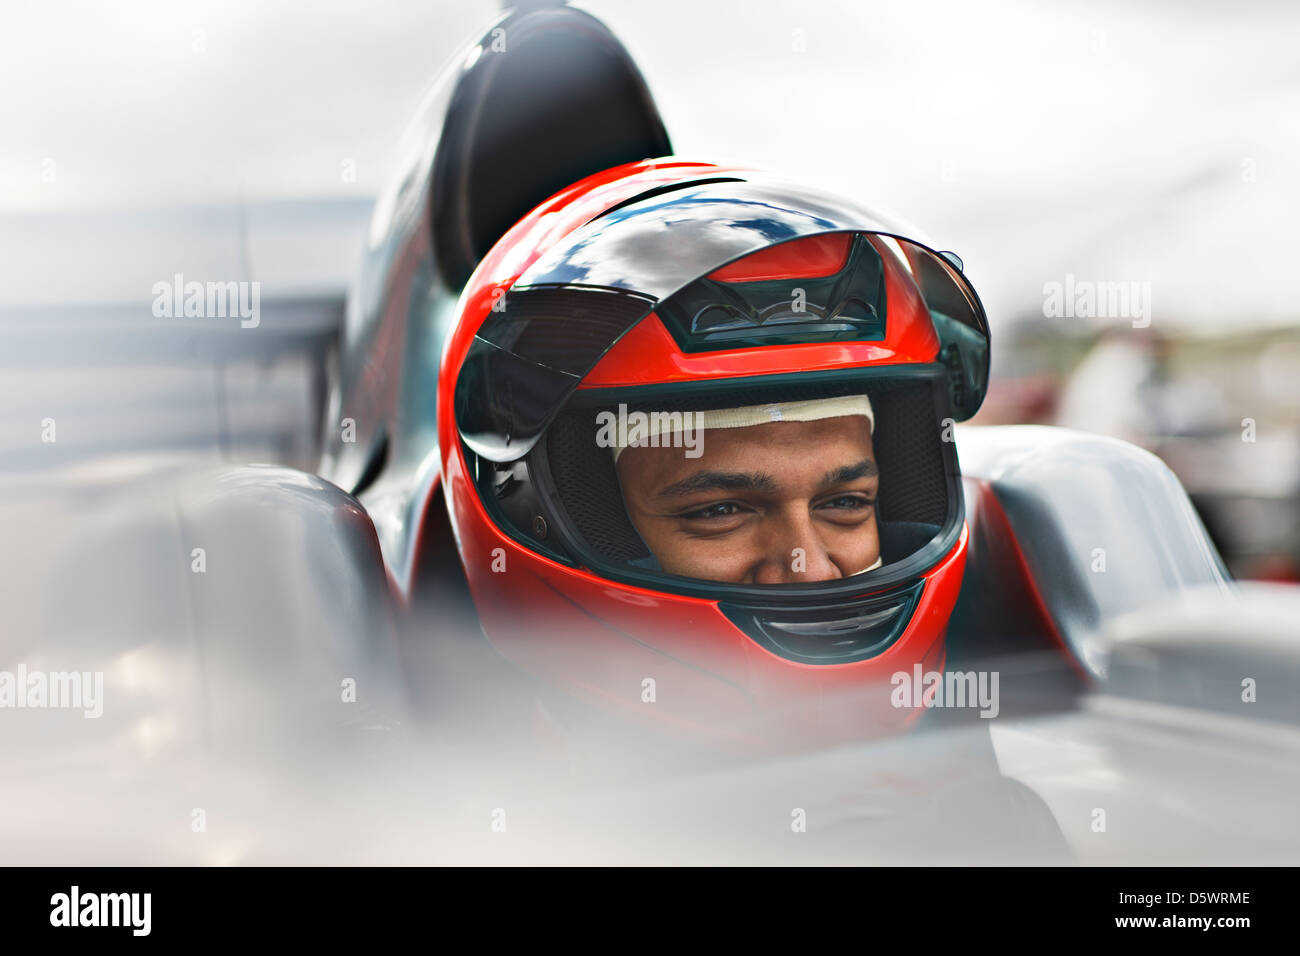 Racer sitting in car on track - Stock Image